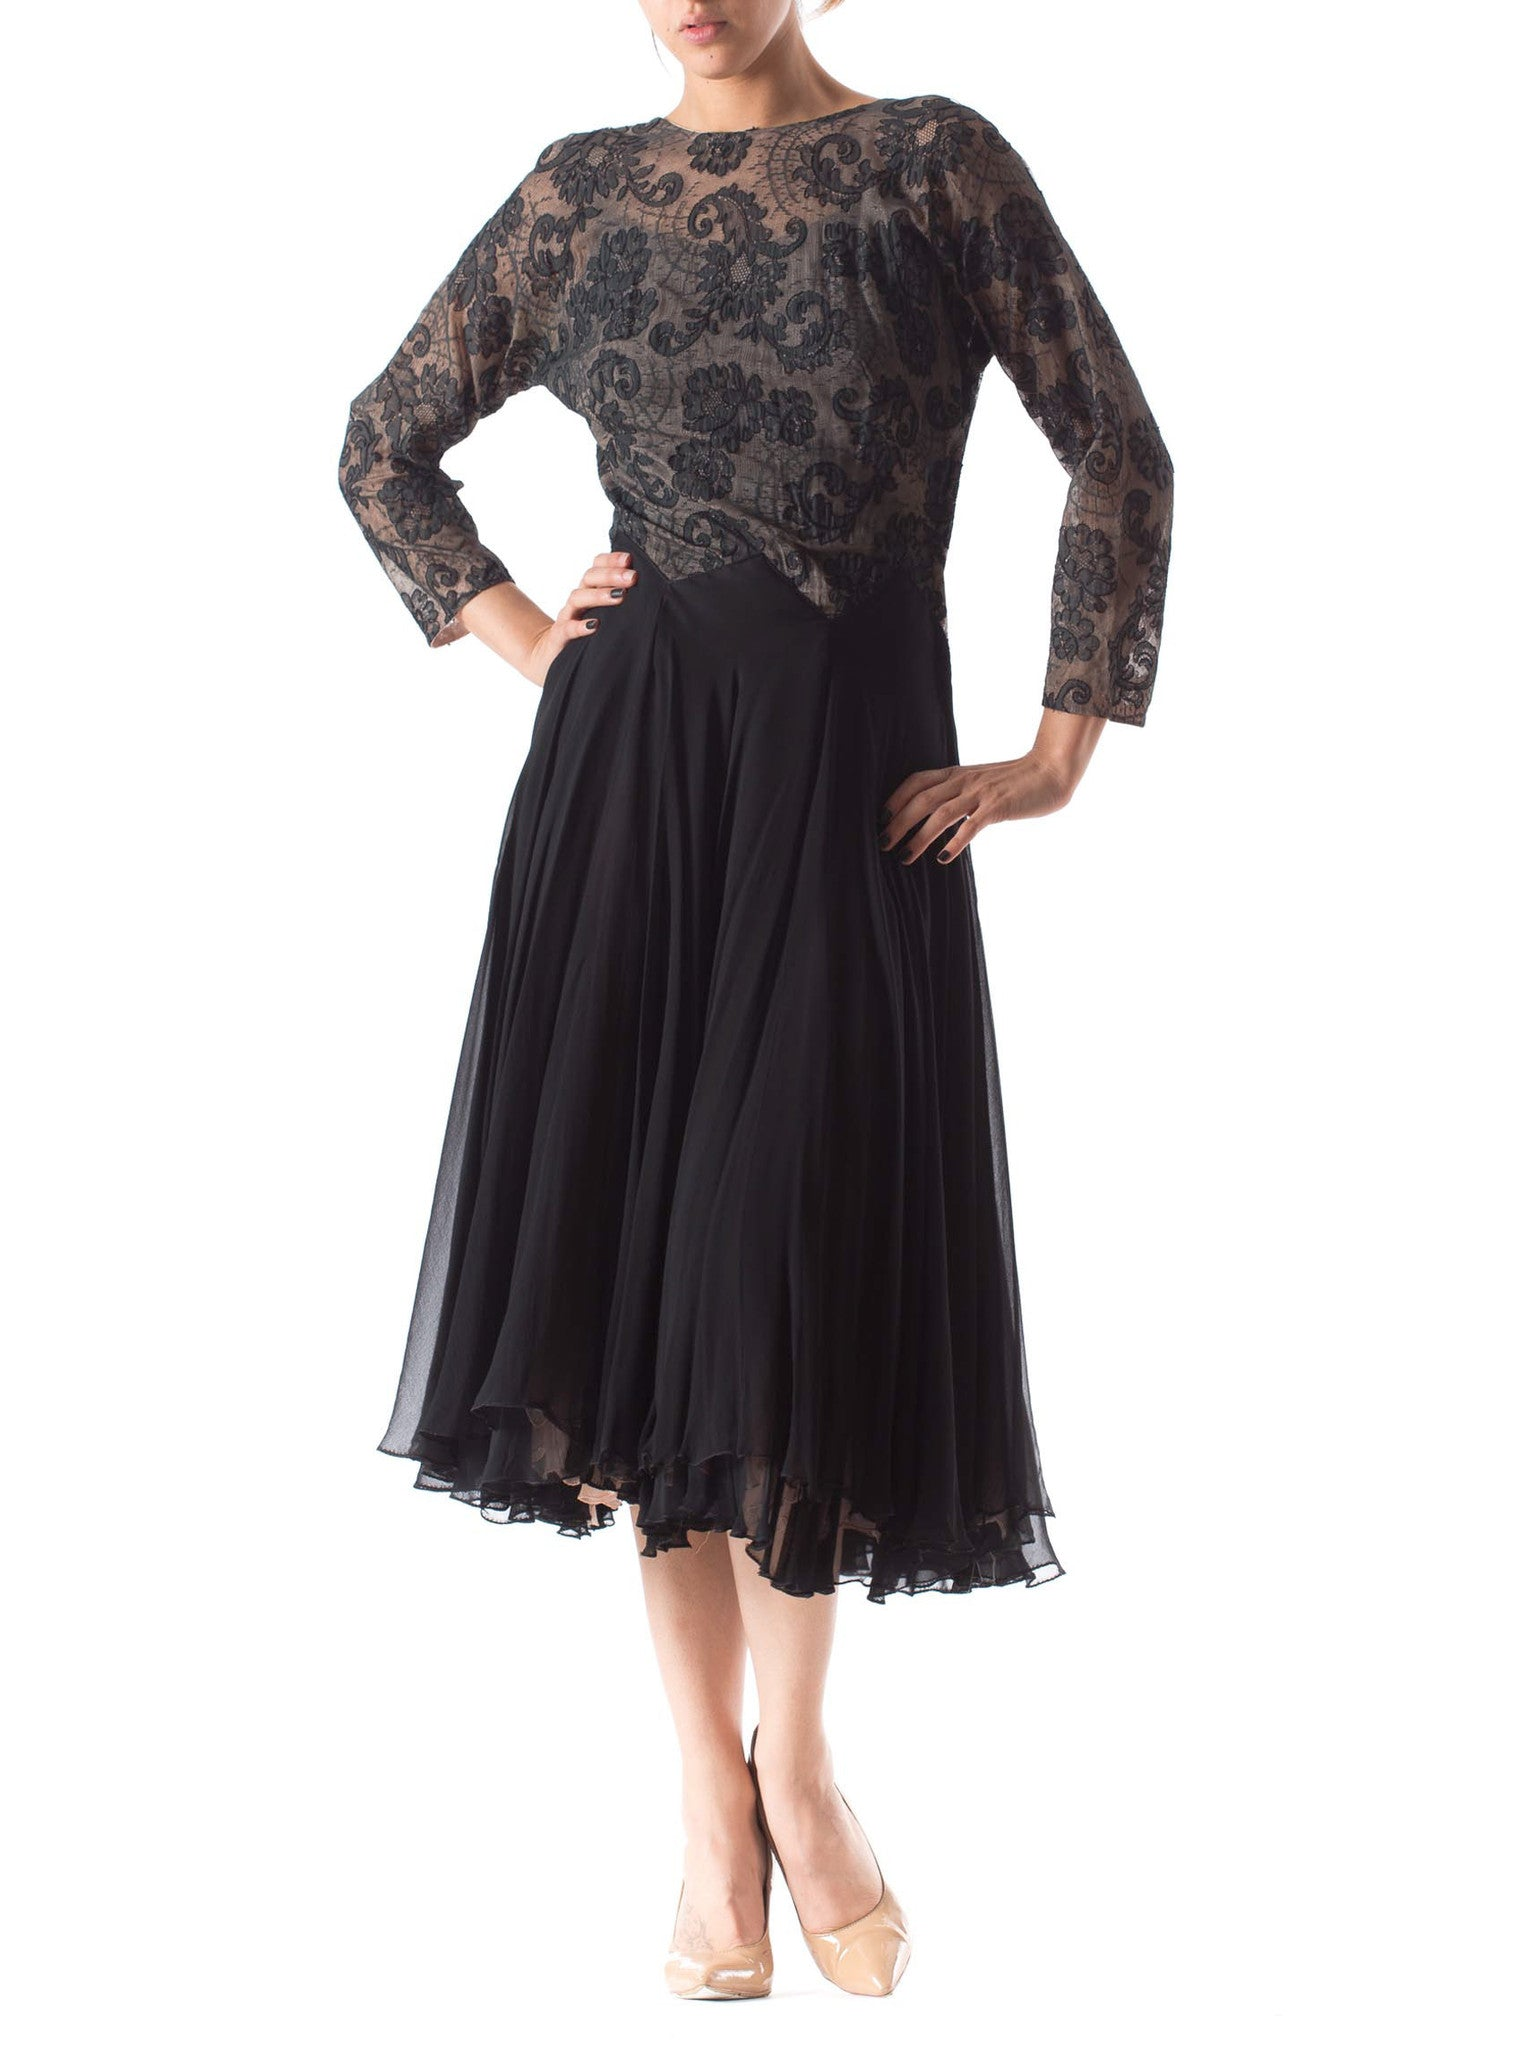 1940s Silk Lace and Chiffon Low Back Dress